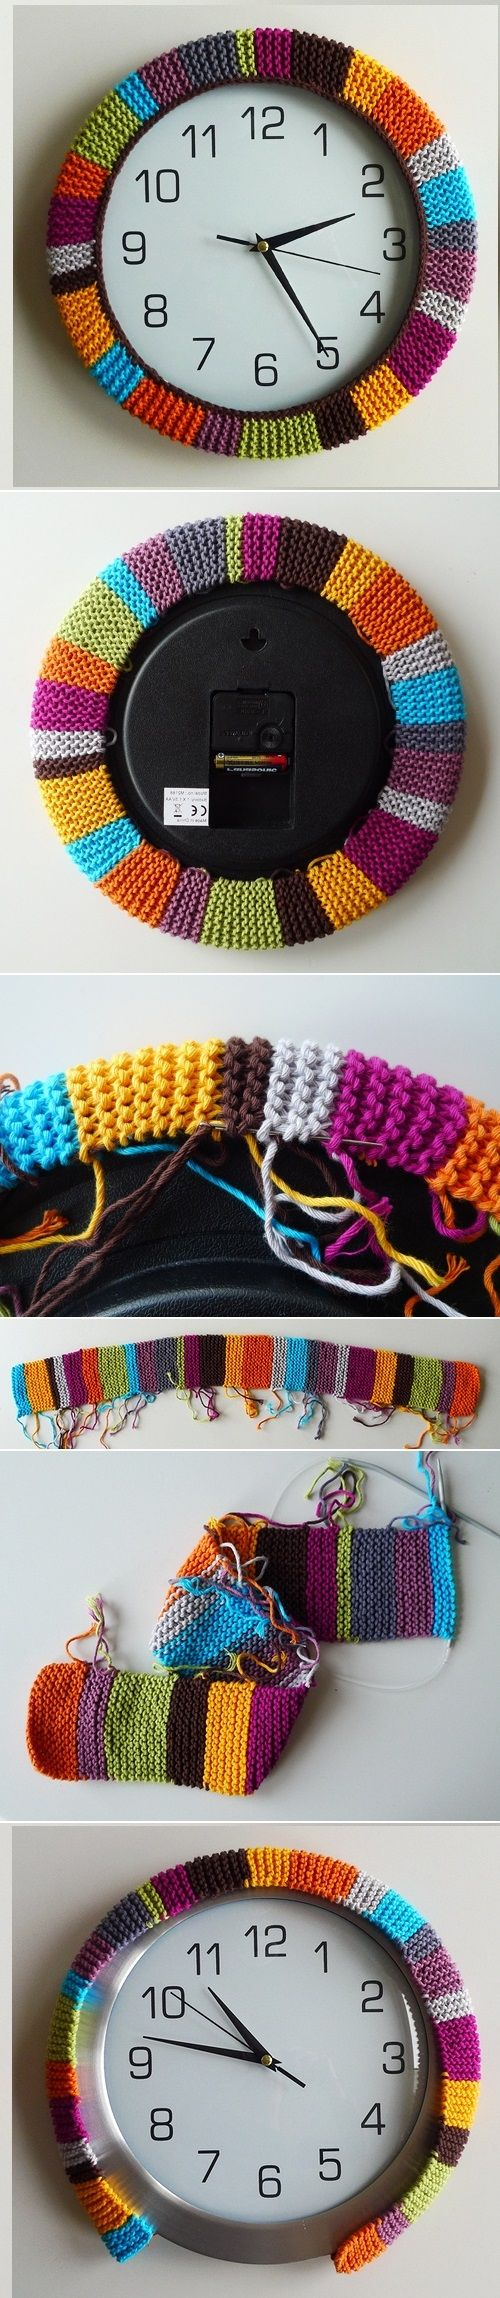 DIY Colorful Retro Wall Clock - try this with Lion Brand Bonbons or leftover yarn scraps!: